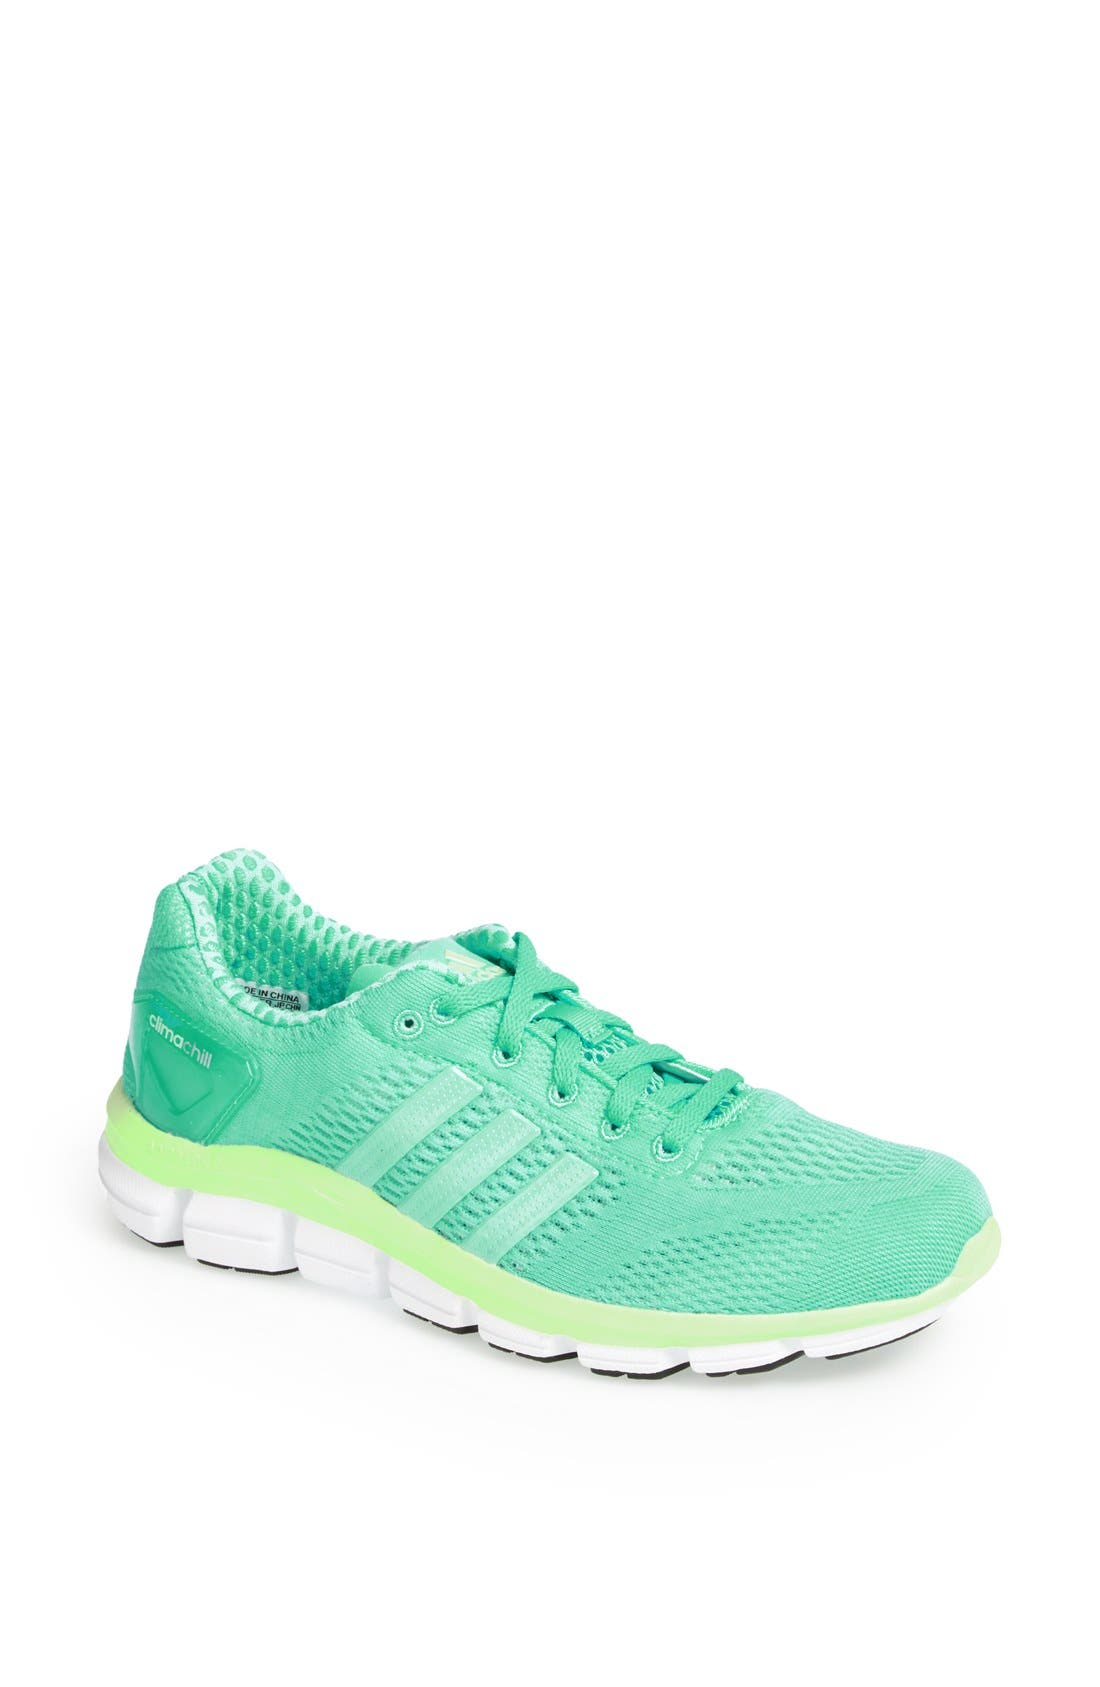 Alternate Image 1 Selected - adidas 'CC Ride' Running Shoes (Women)